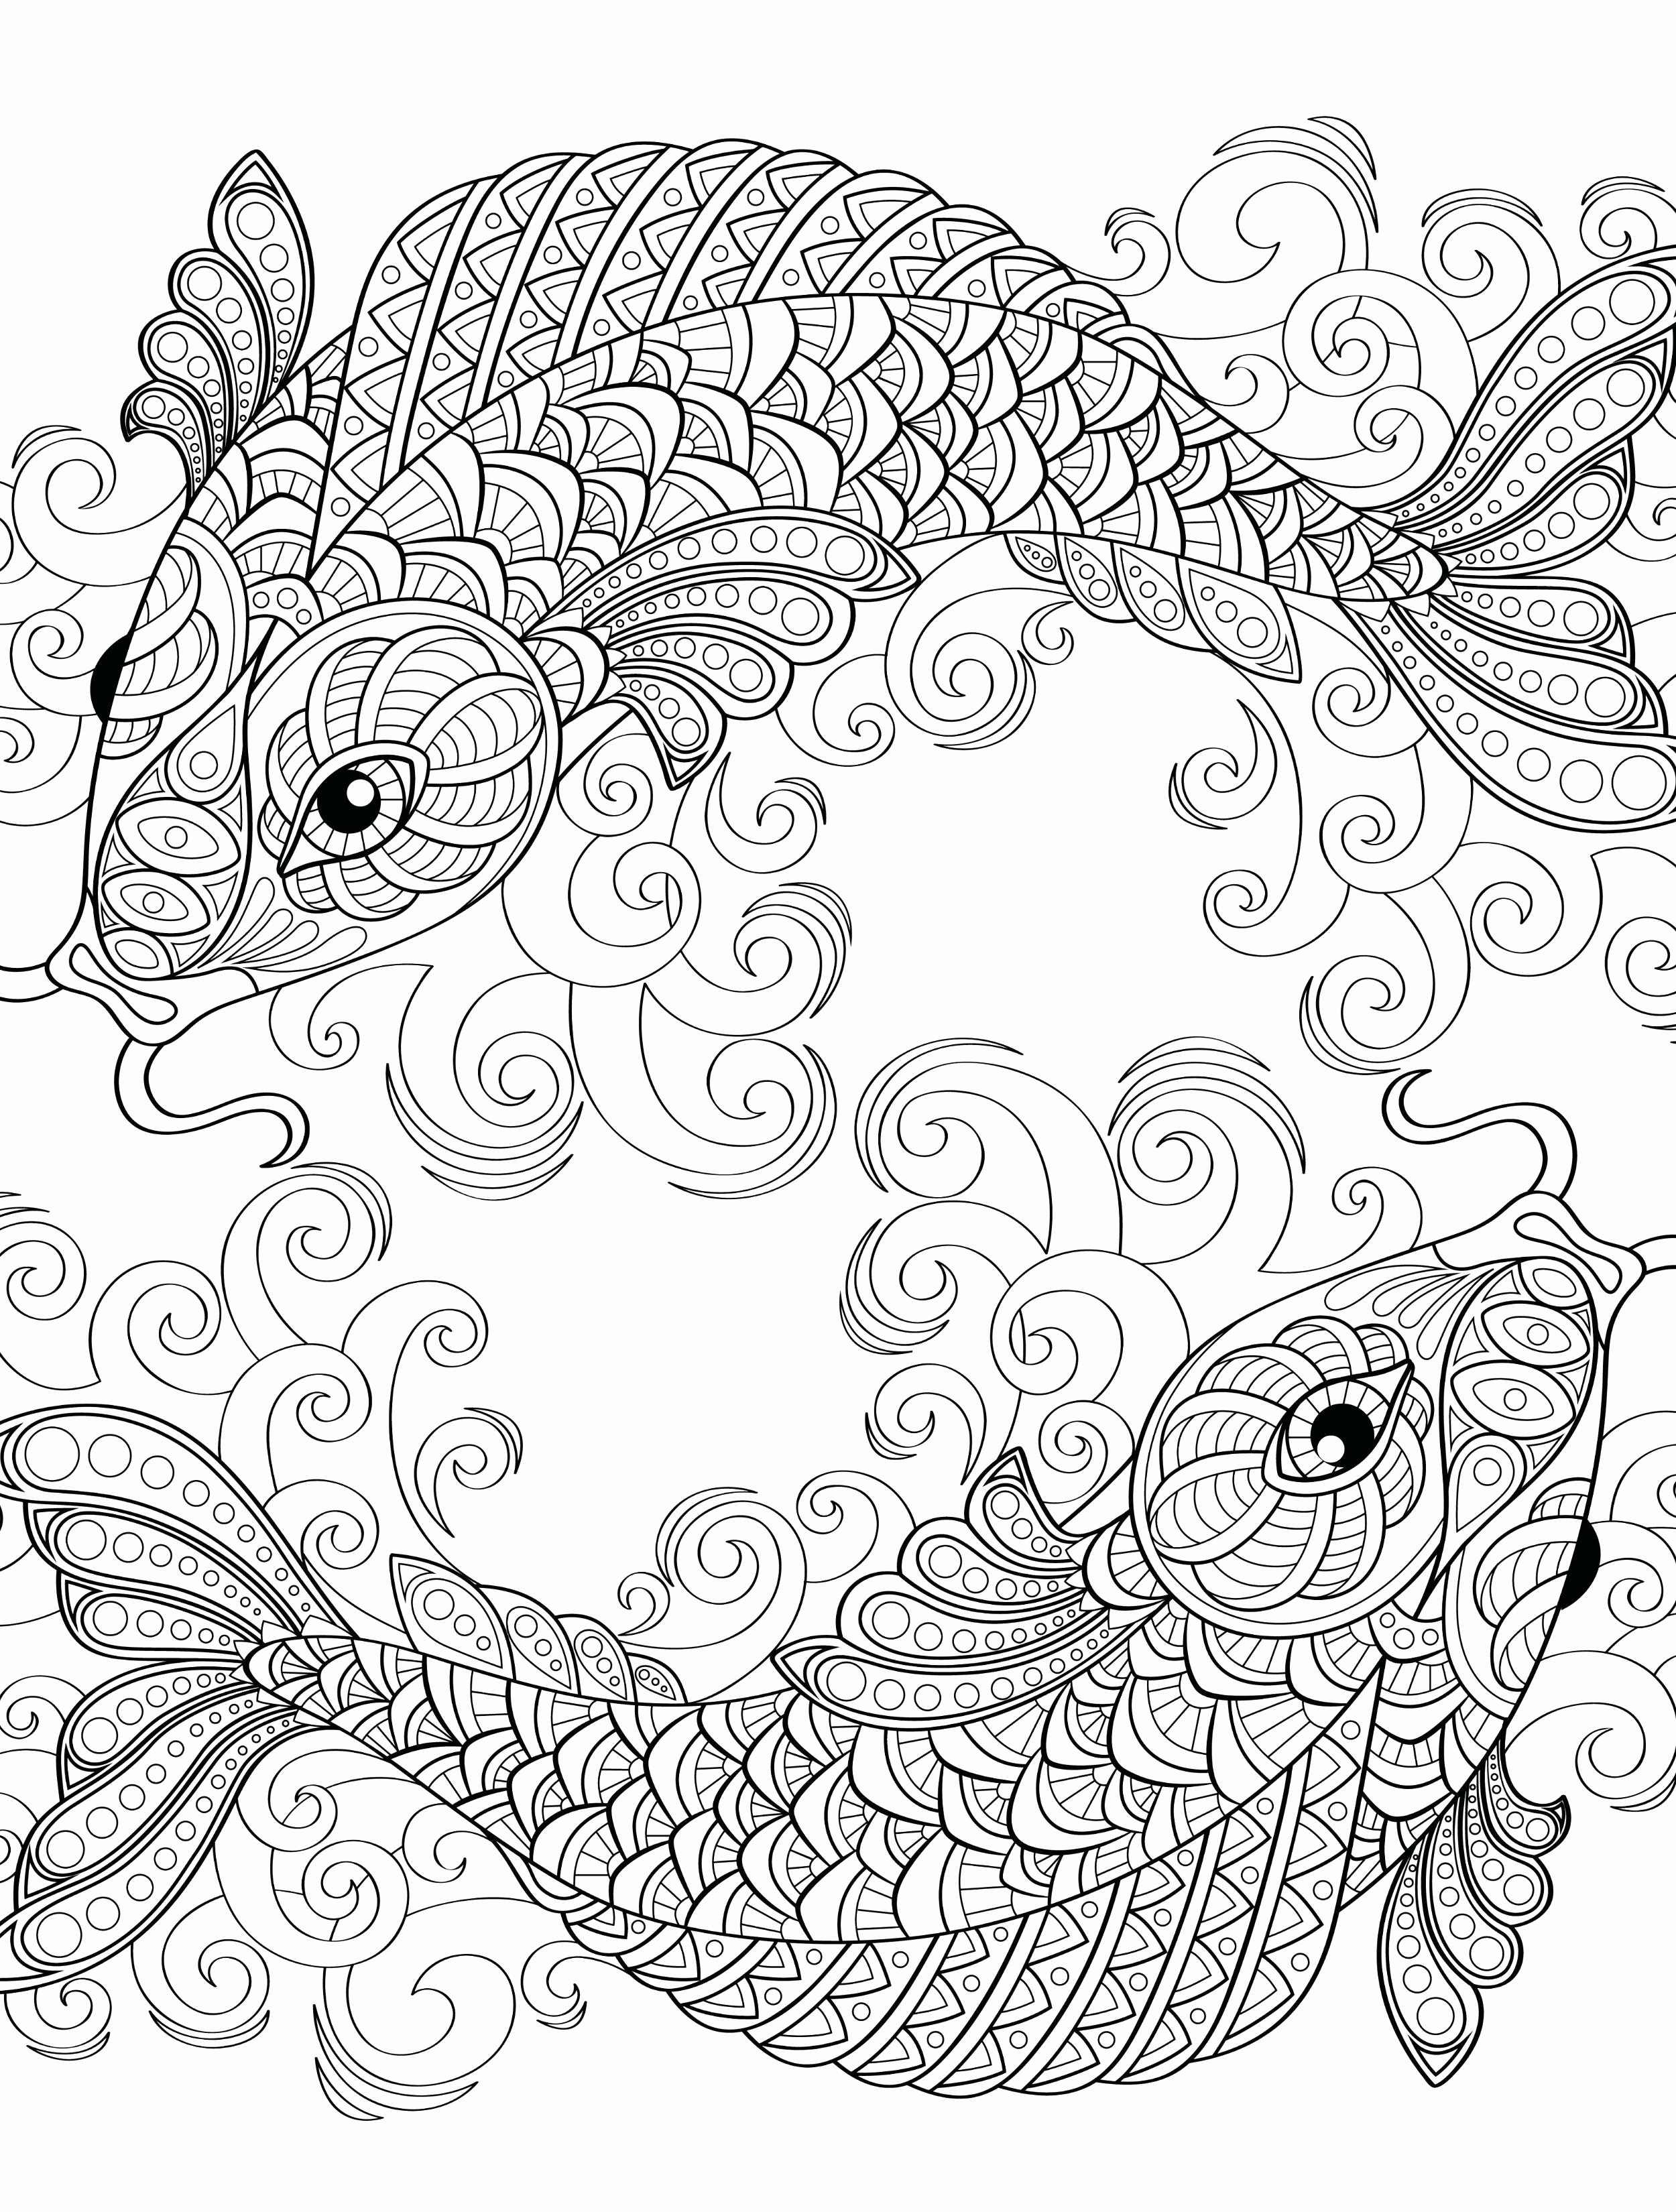 Free Jesus Coloring Pages Fresh Free Fish Coloring Pages New Disciples Od Jesus Christ Catching